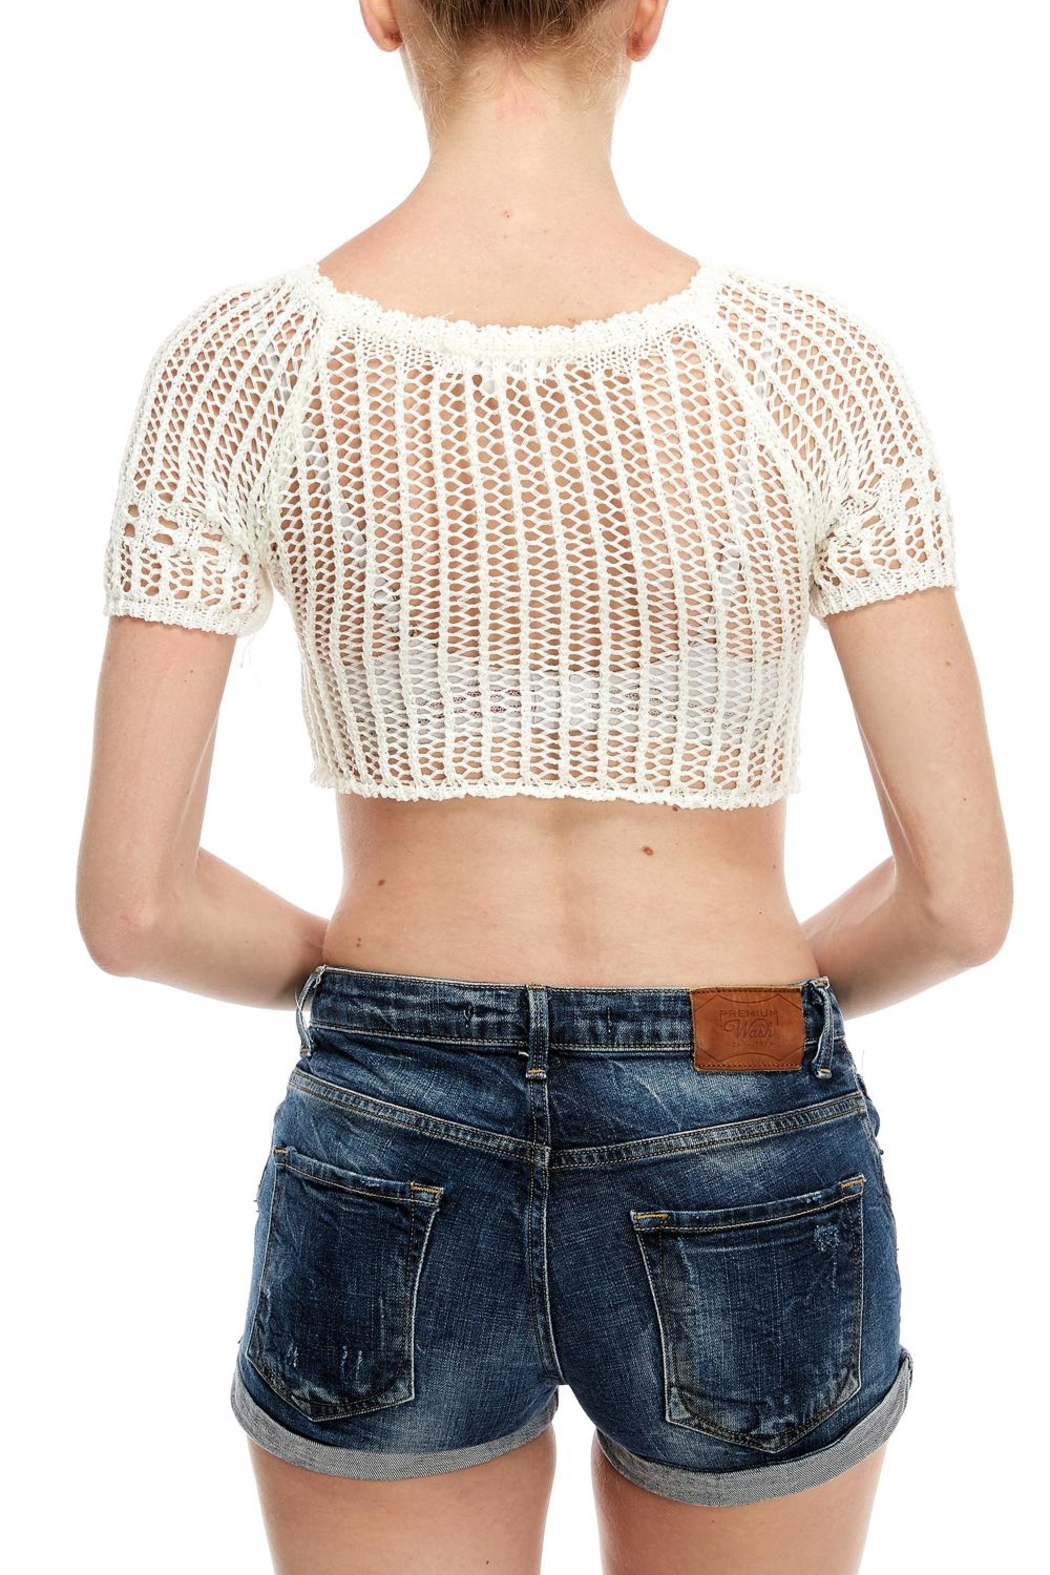 Wild Honey Crochet Crop Top - Side Cropped Image